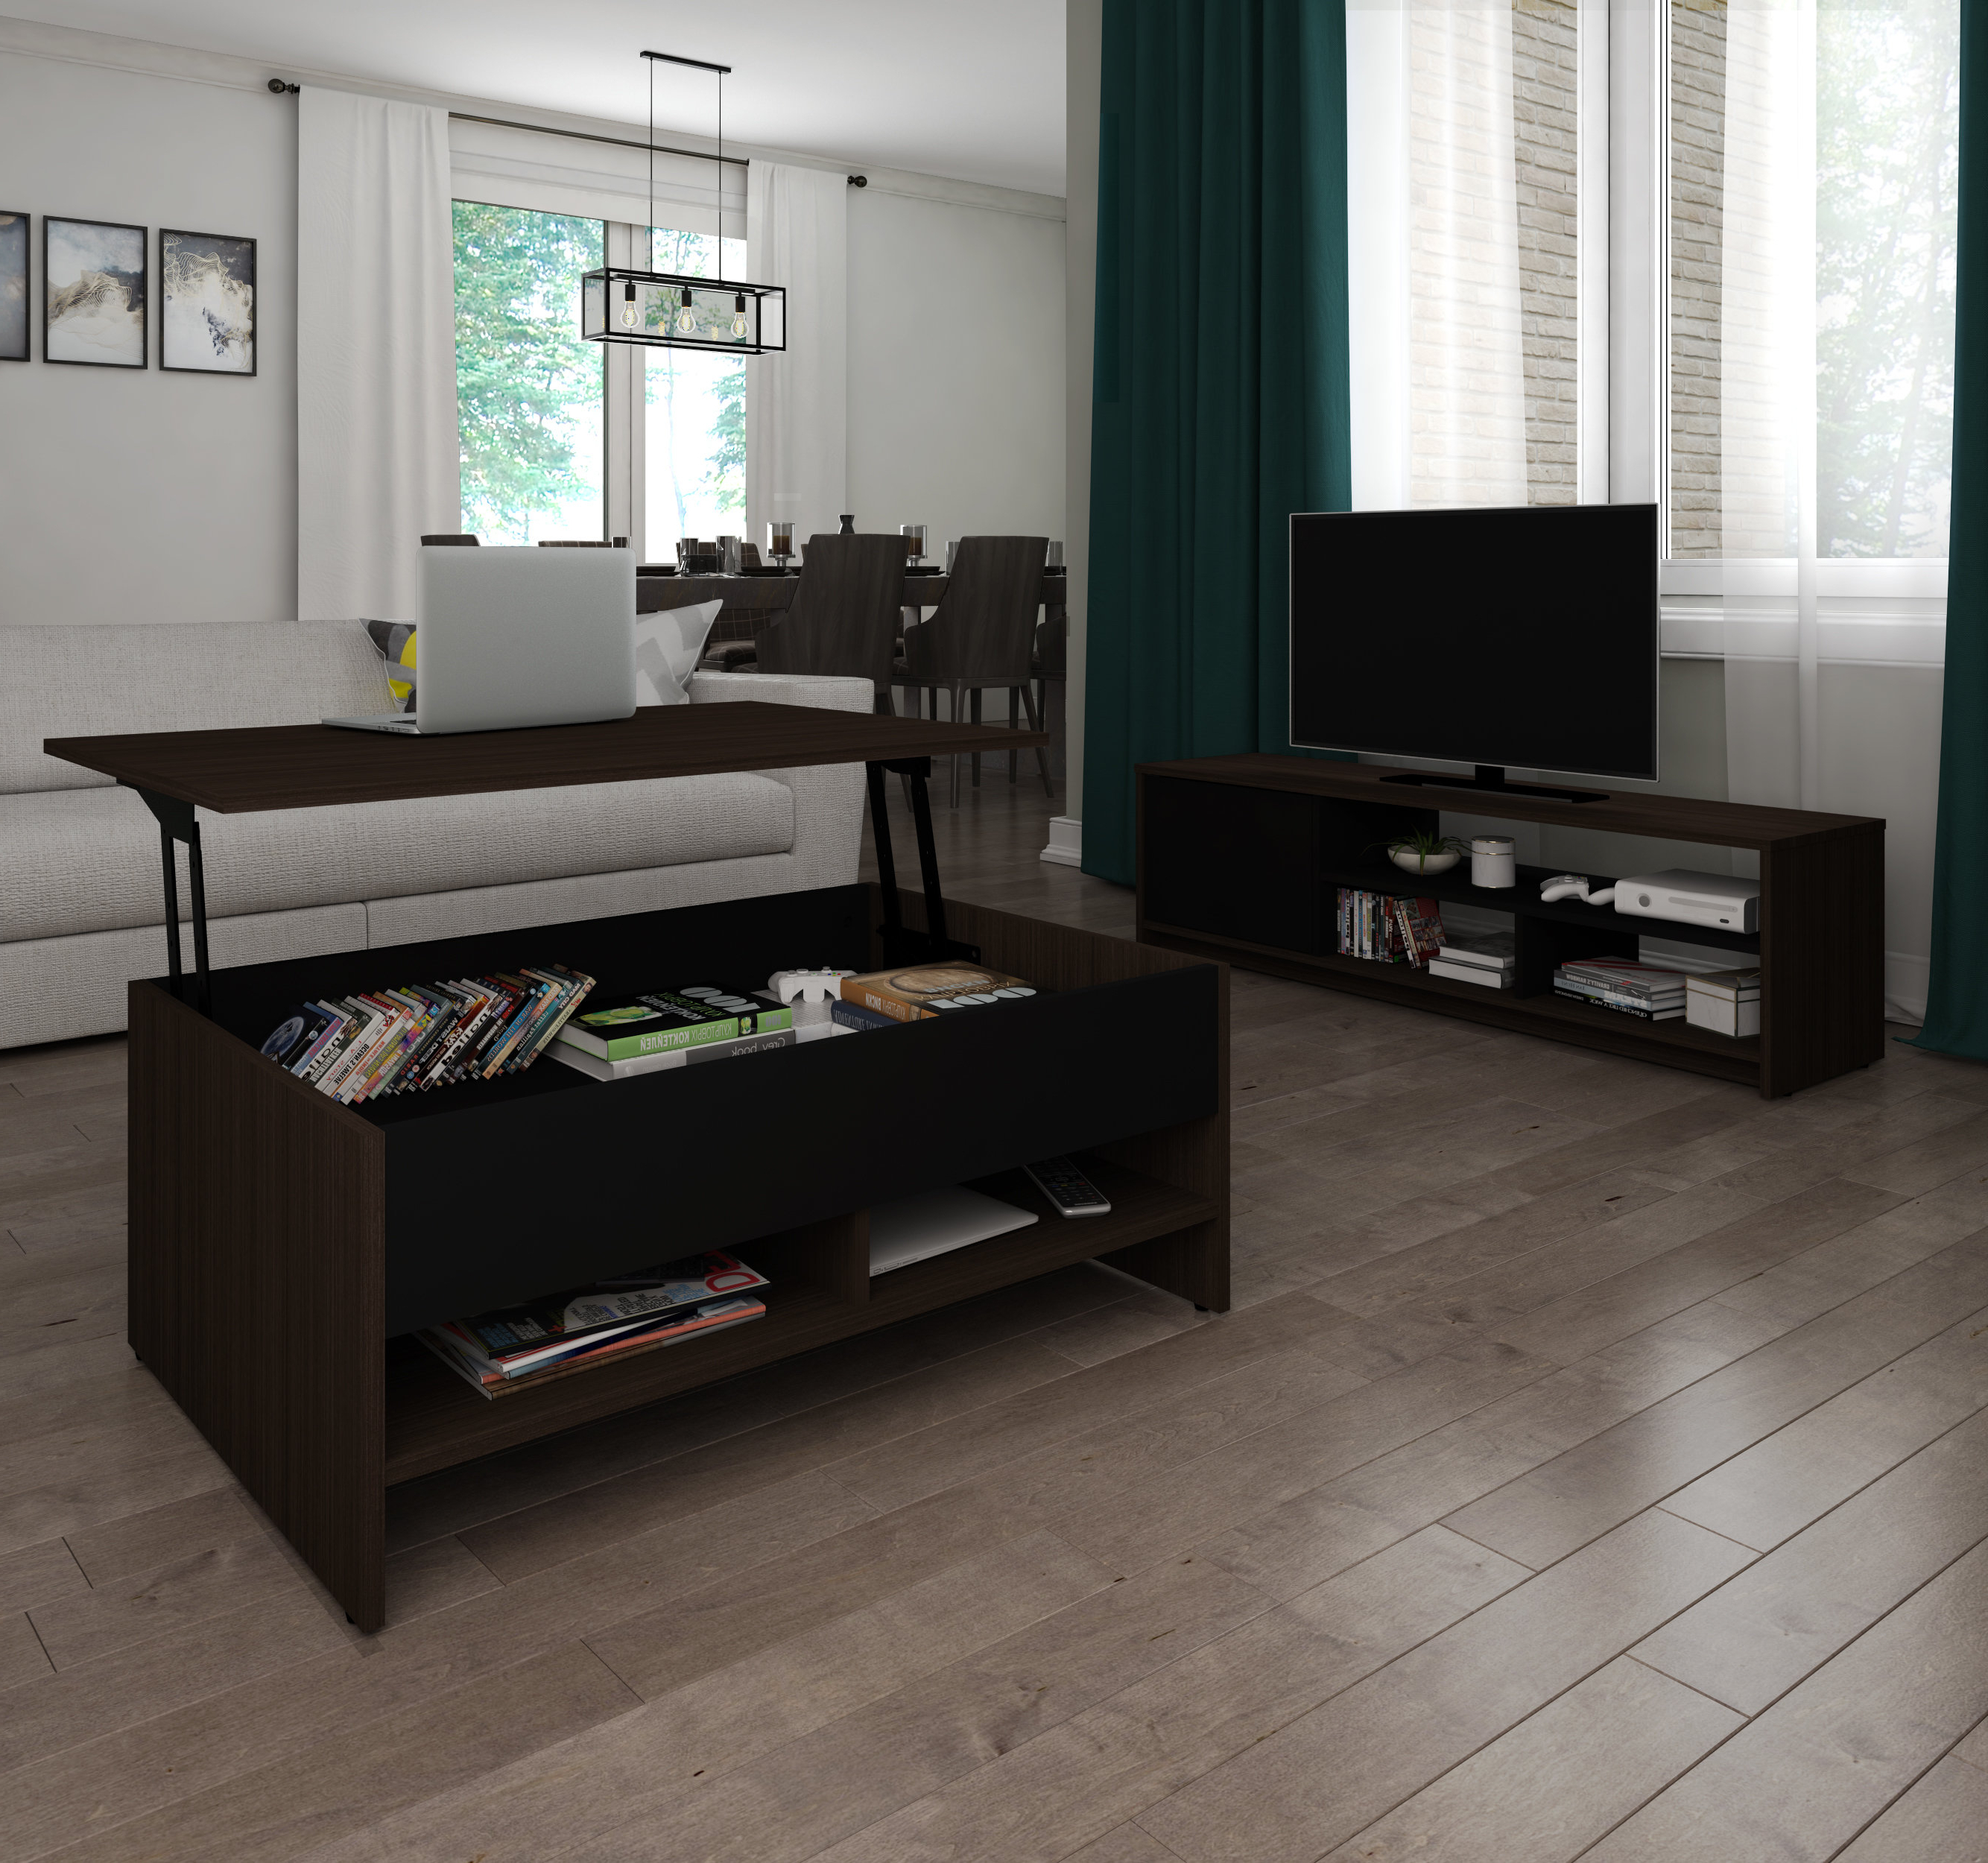 Rustic Coffee Table And Tv Stand Regarding Most Recent Coffee Table And Tv Stand Set (View 14 of 20)